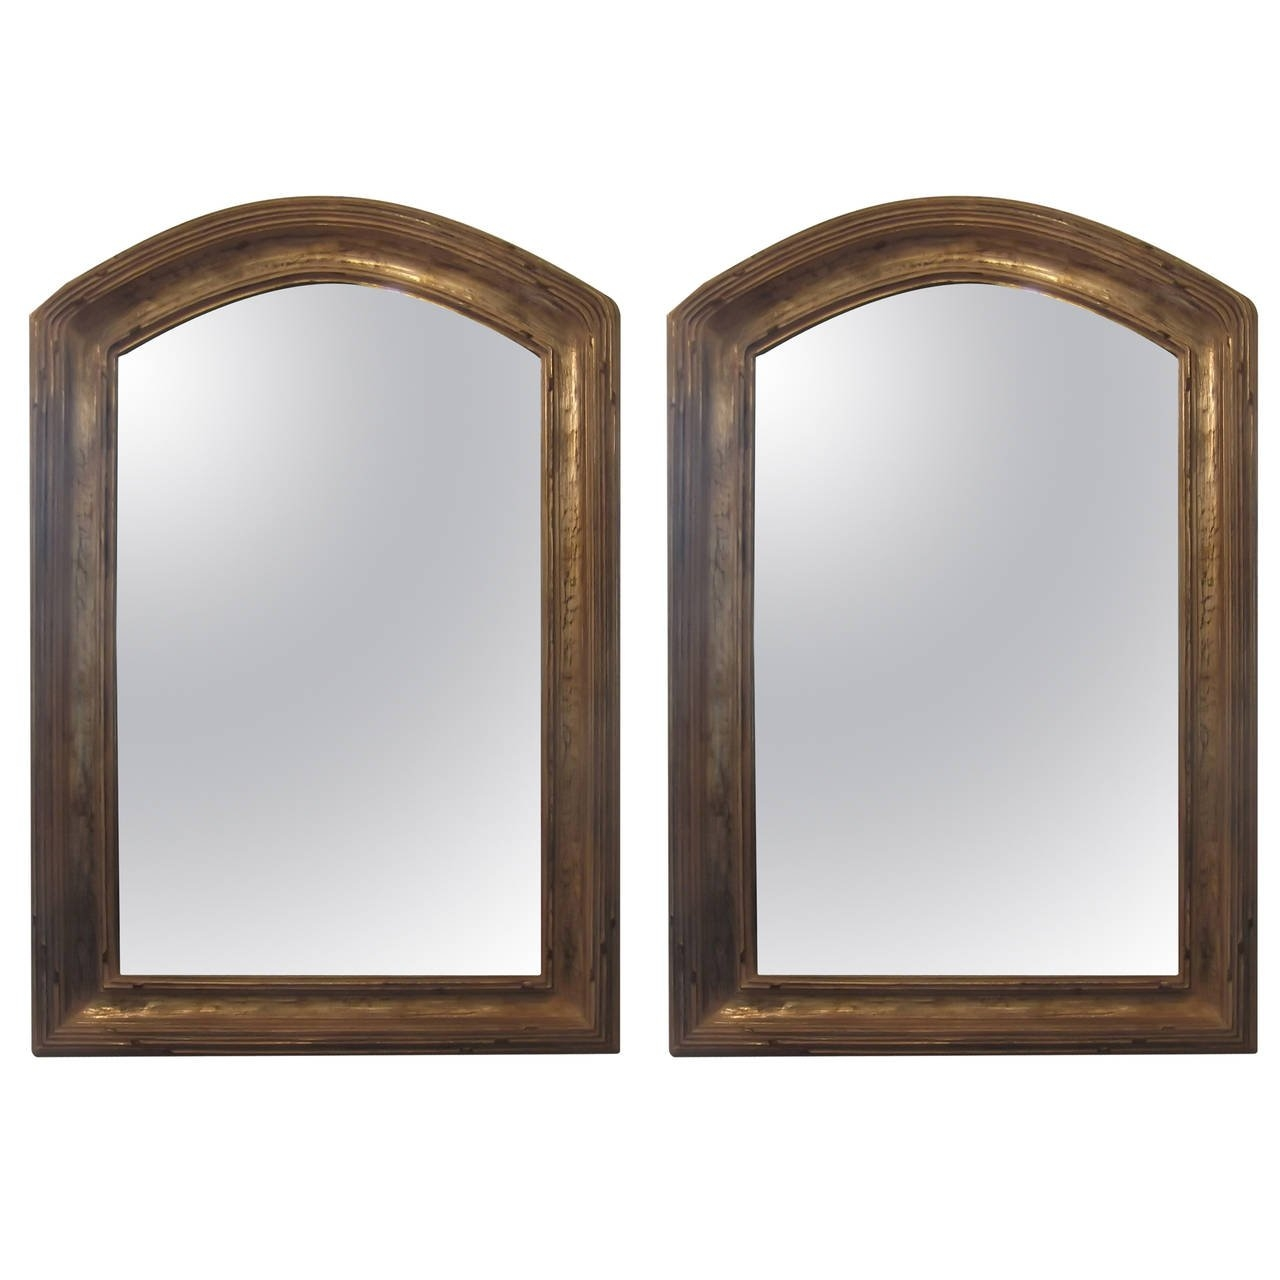 Pair Of Giltwood Arched Top Mirrors At 1stdibs Inside Arched Mirrors (Image 13 of 15)